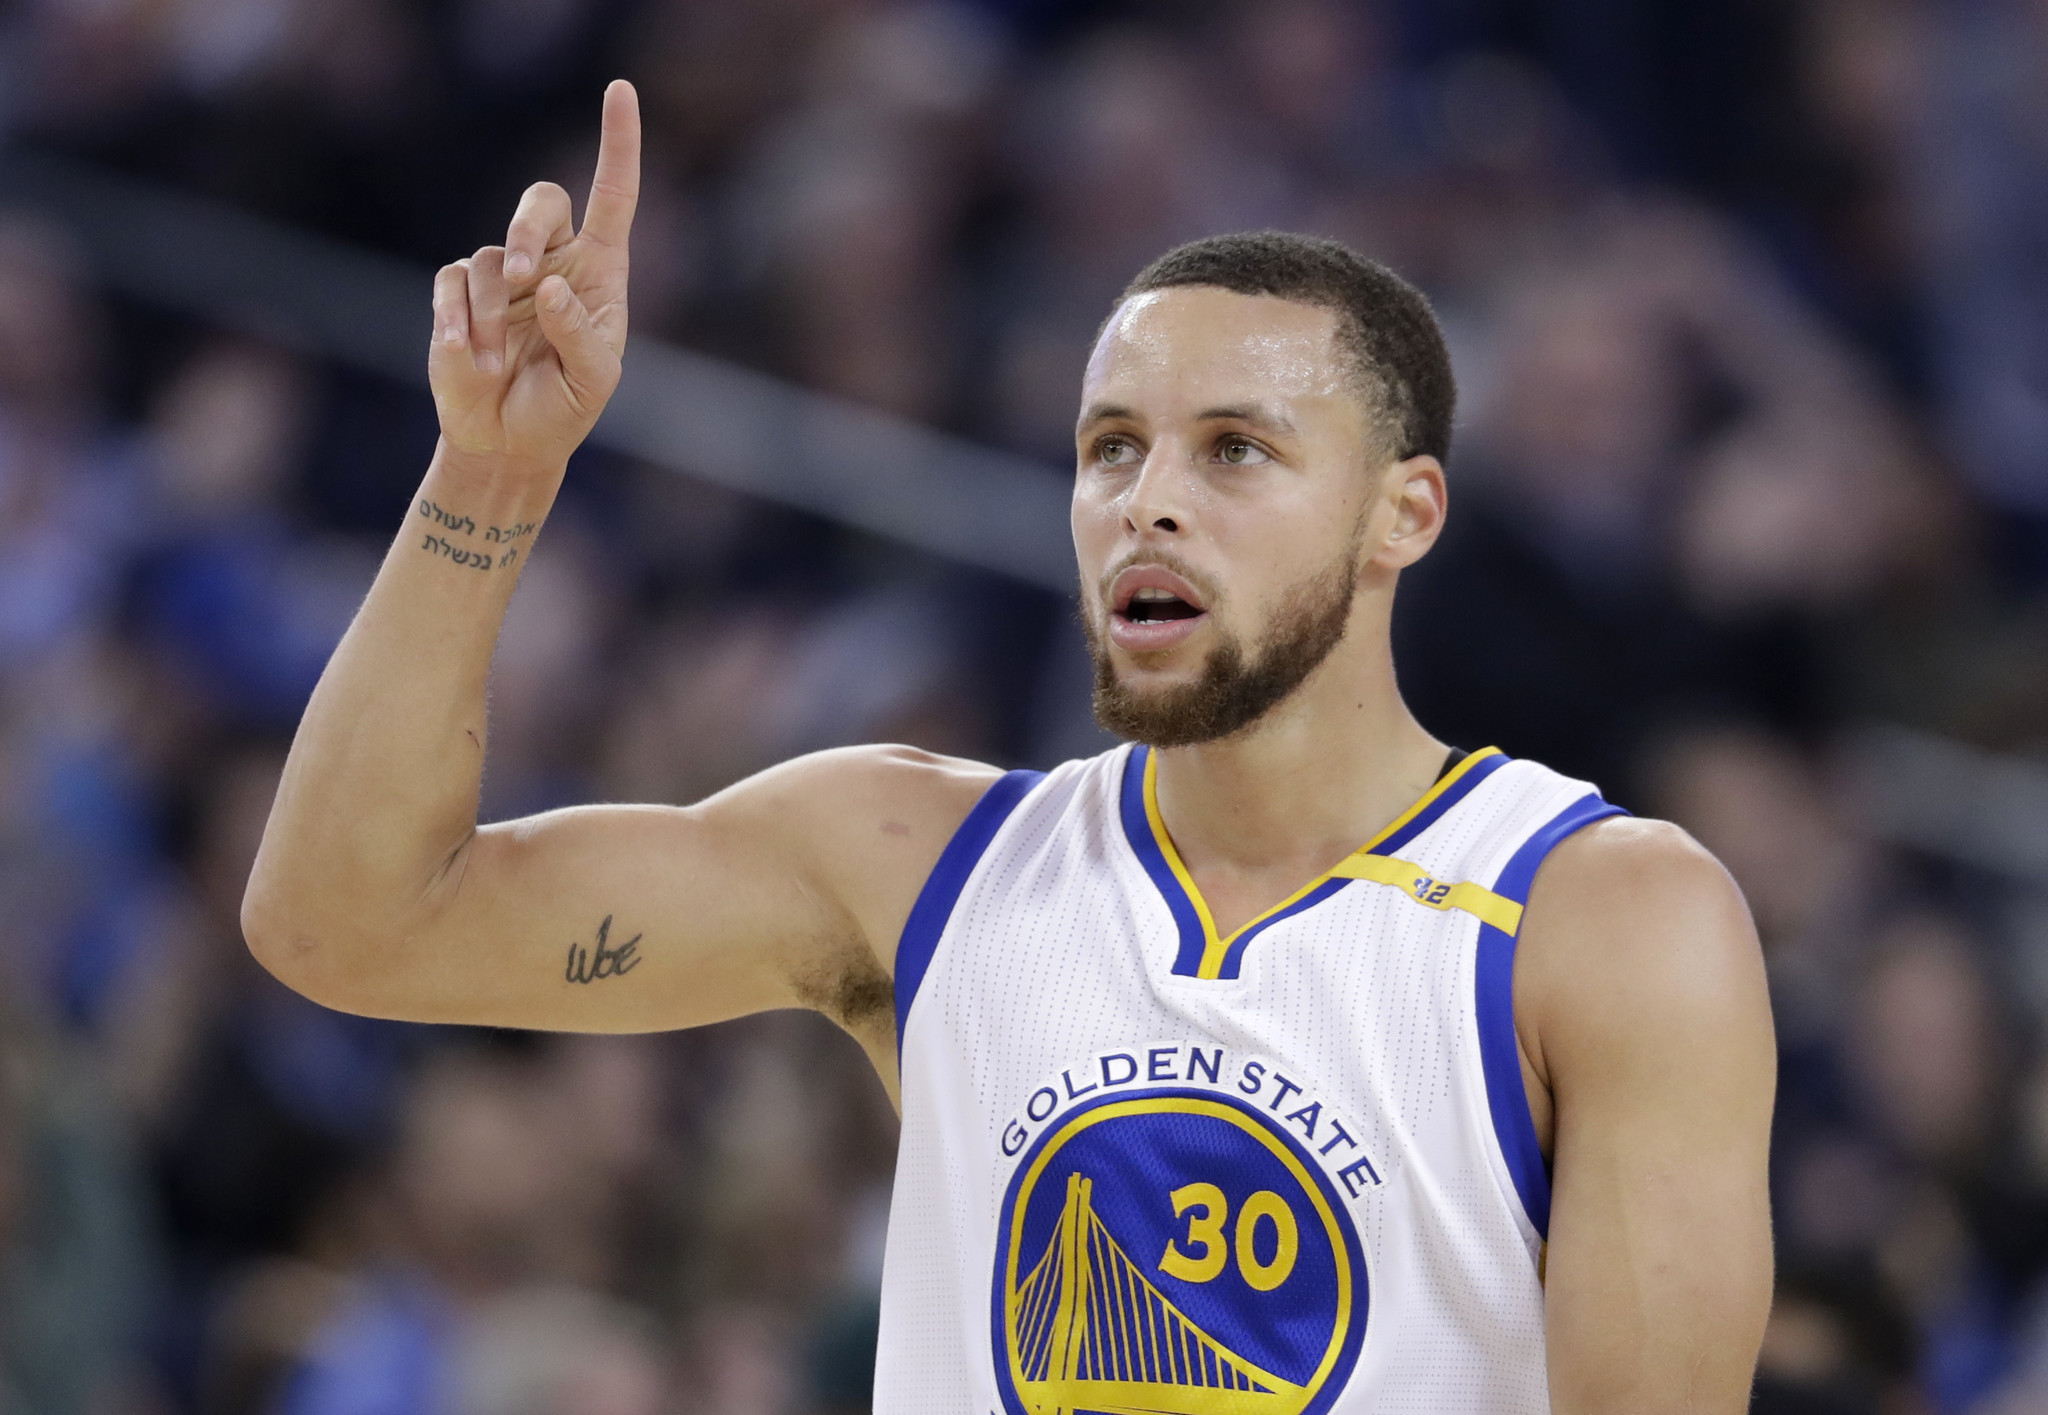 0883f4715539 Stephen Curry bluntly disagrees with Under Armour CEO calling Donald Trump  an  asset  - Chicago Tribune